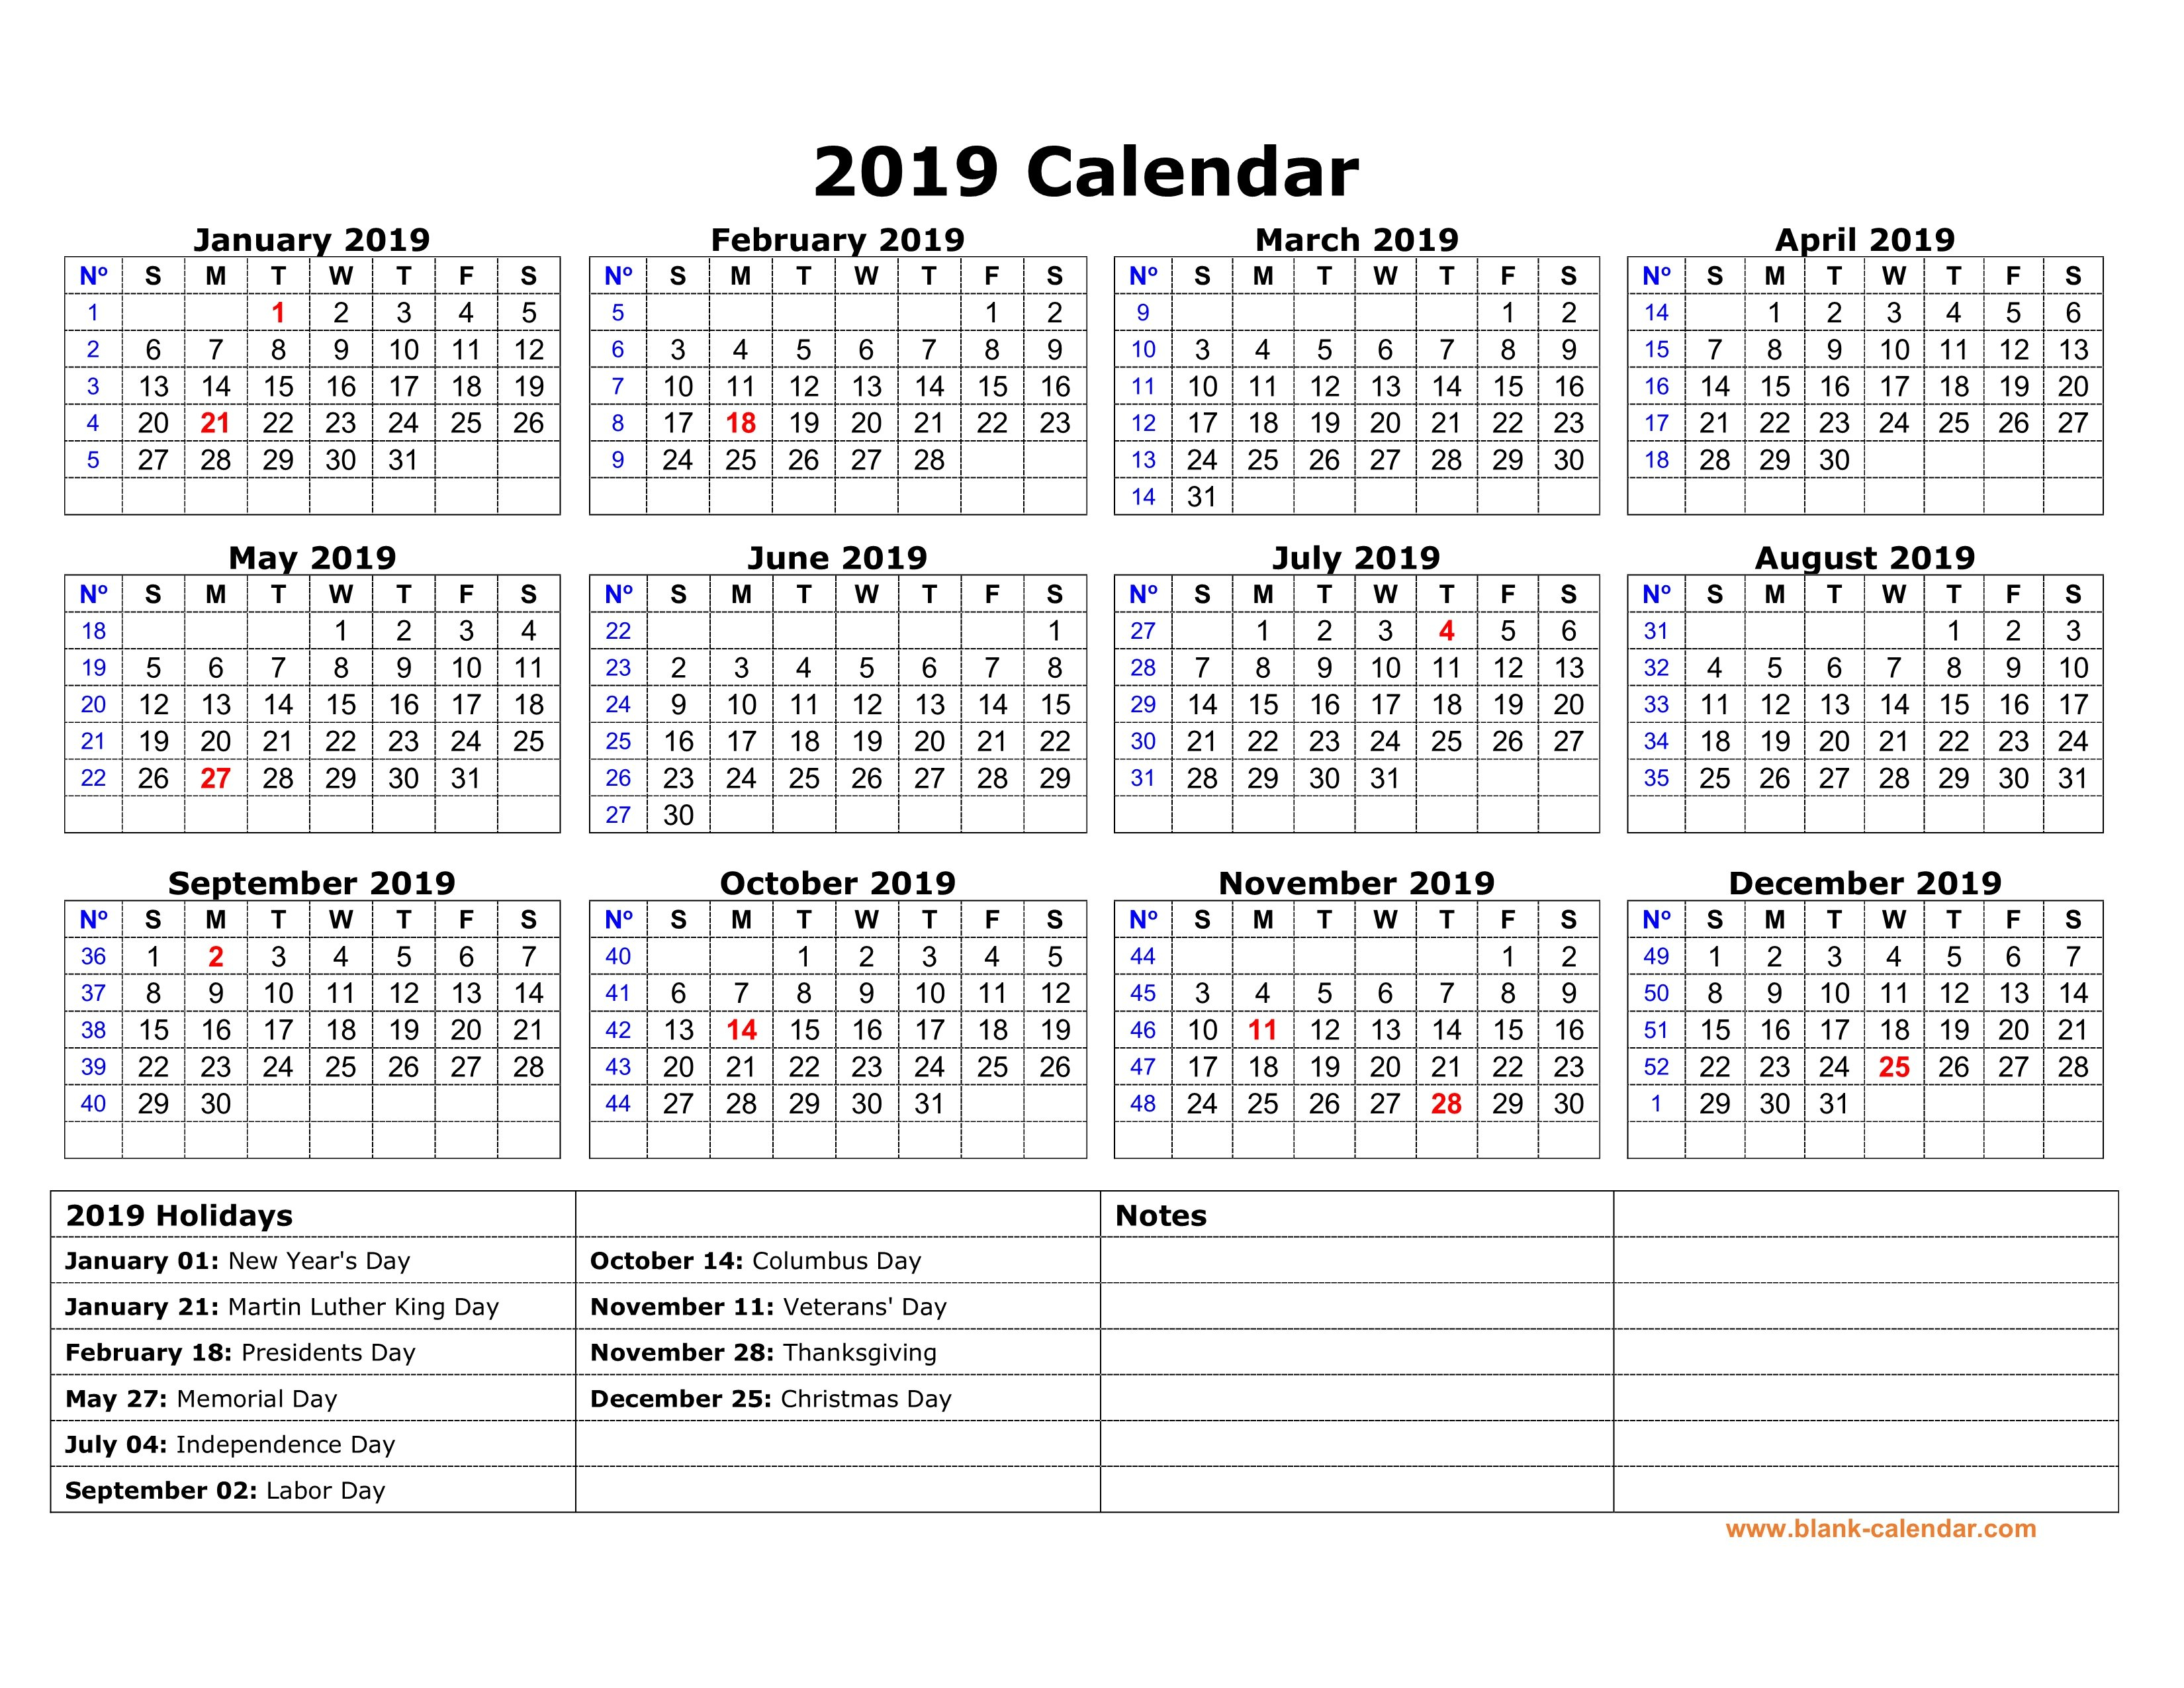 Free Download Printable Calendar 2019 With Us Federal Holidays, One Calendar 2019 Us Holidays